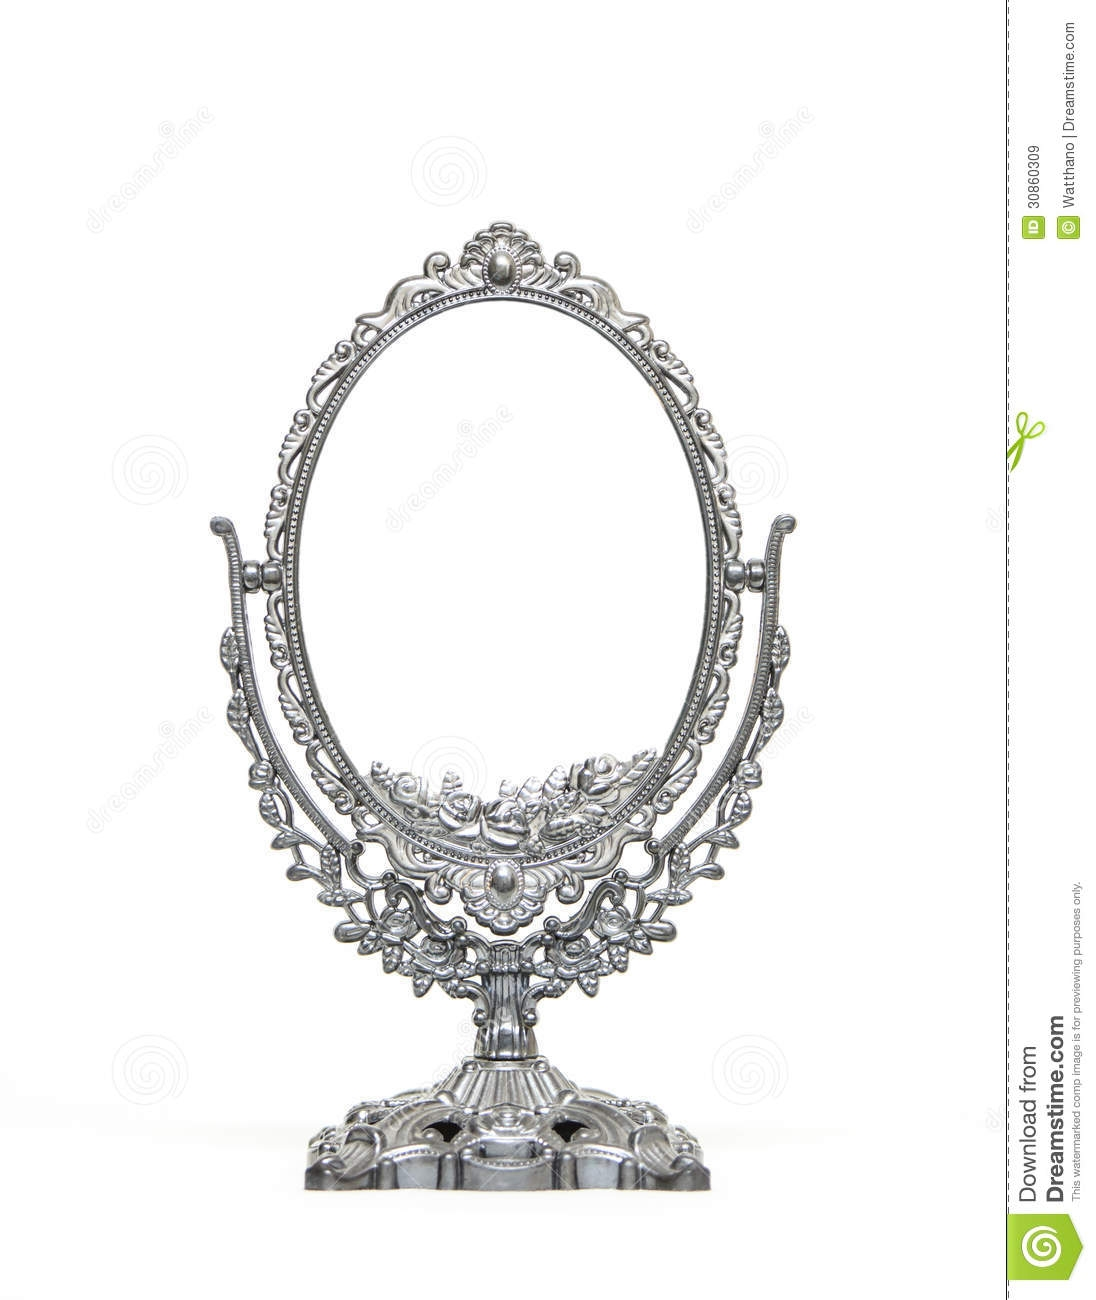 Silver Vintage Mirror Isolated On White Background Royalty Free Within Silver Vintage Mirror (View 9 of 15)